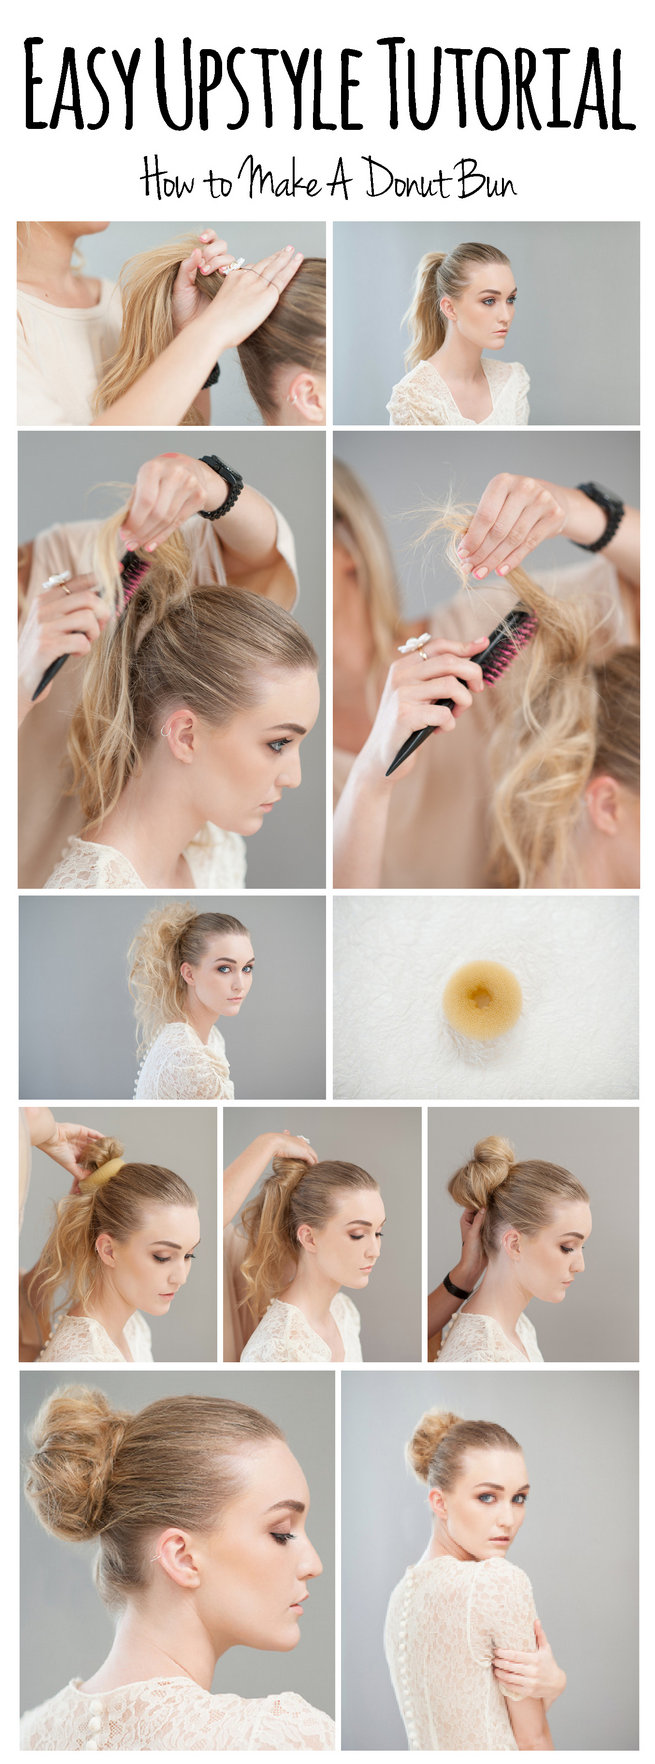 10 Best Bun Hairstyles to Try in 2018 (Tutorials Included)